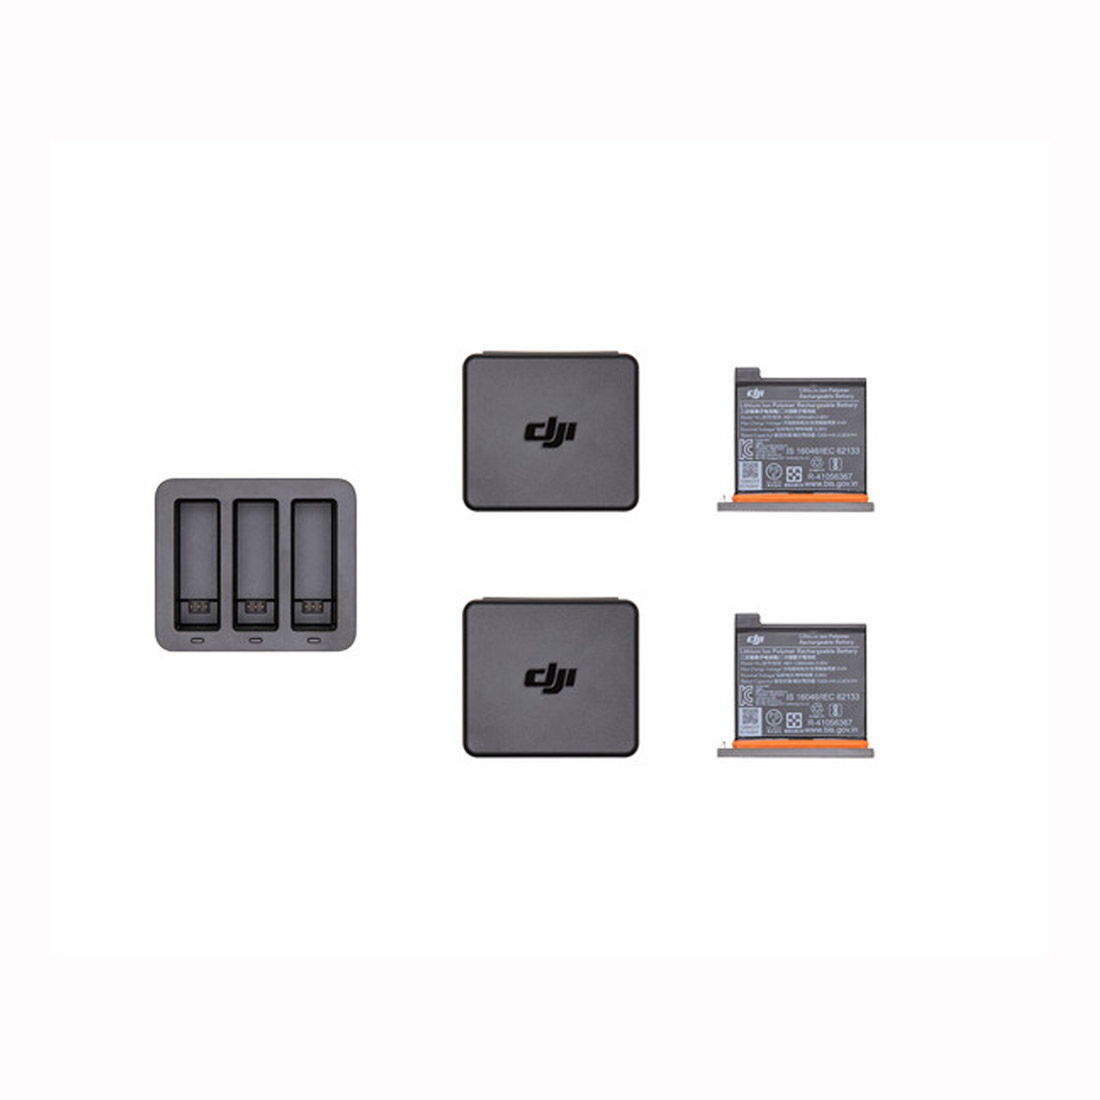 DJI Osmo Action PT3 Charging Kit (1 Hub, 2 Battery and Case)